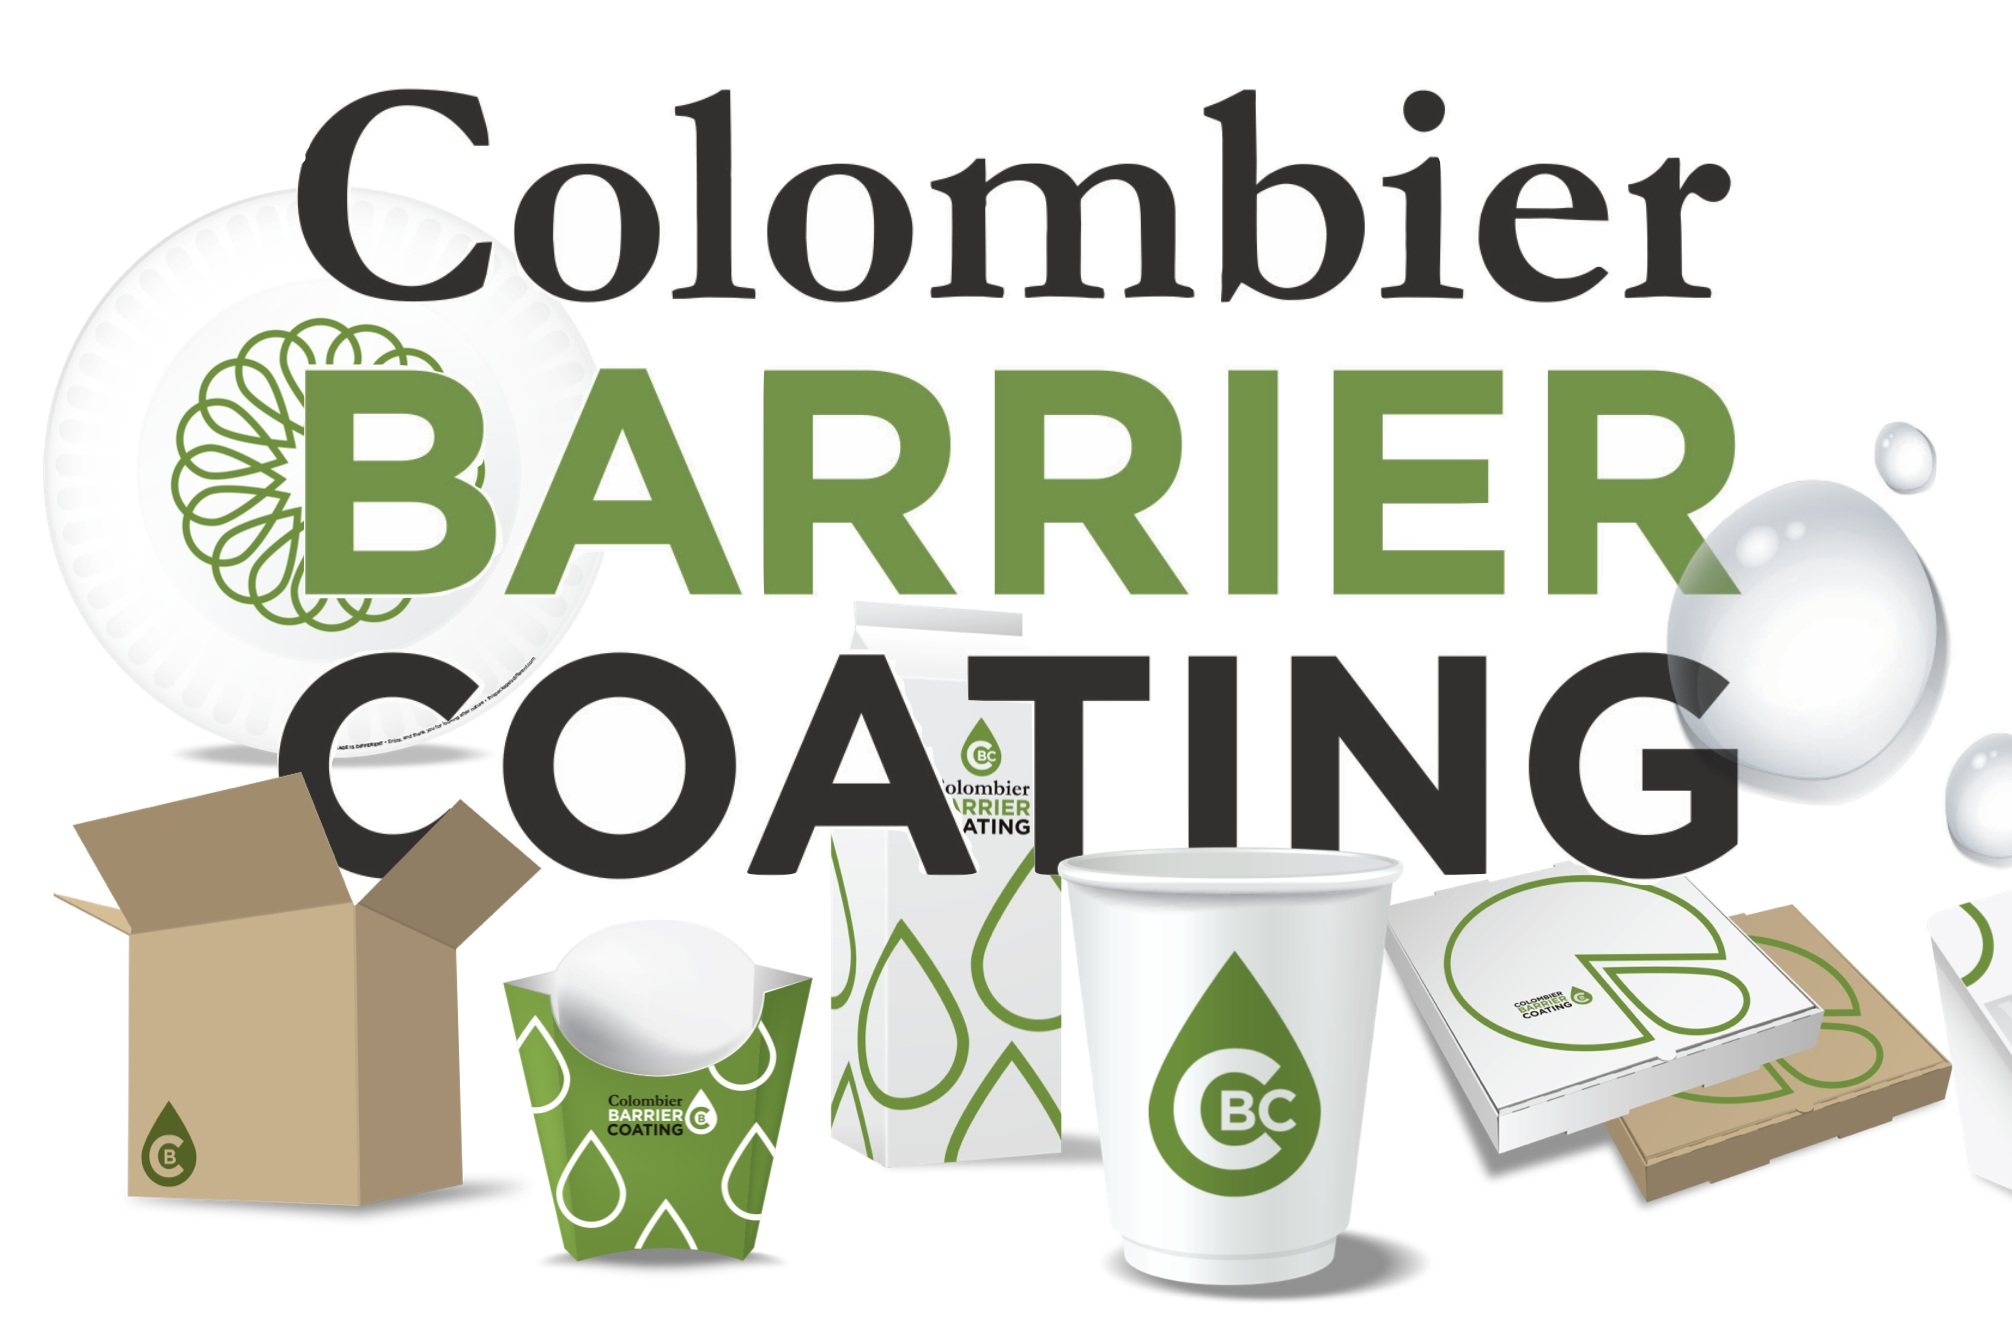 Colombier - Netherlands, FinlandINNOVATIVE CUP LINER CATEGORYColombier creates a recyclable and compostable barrier for paperboard cups.